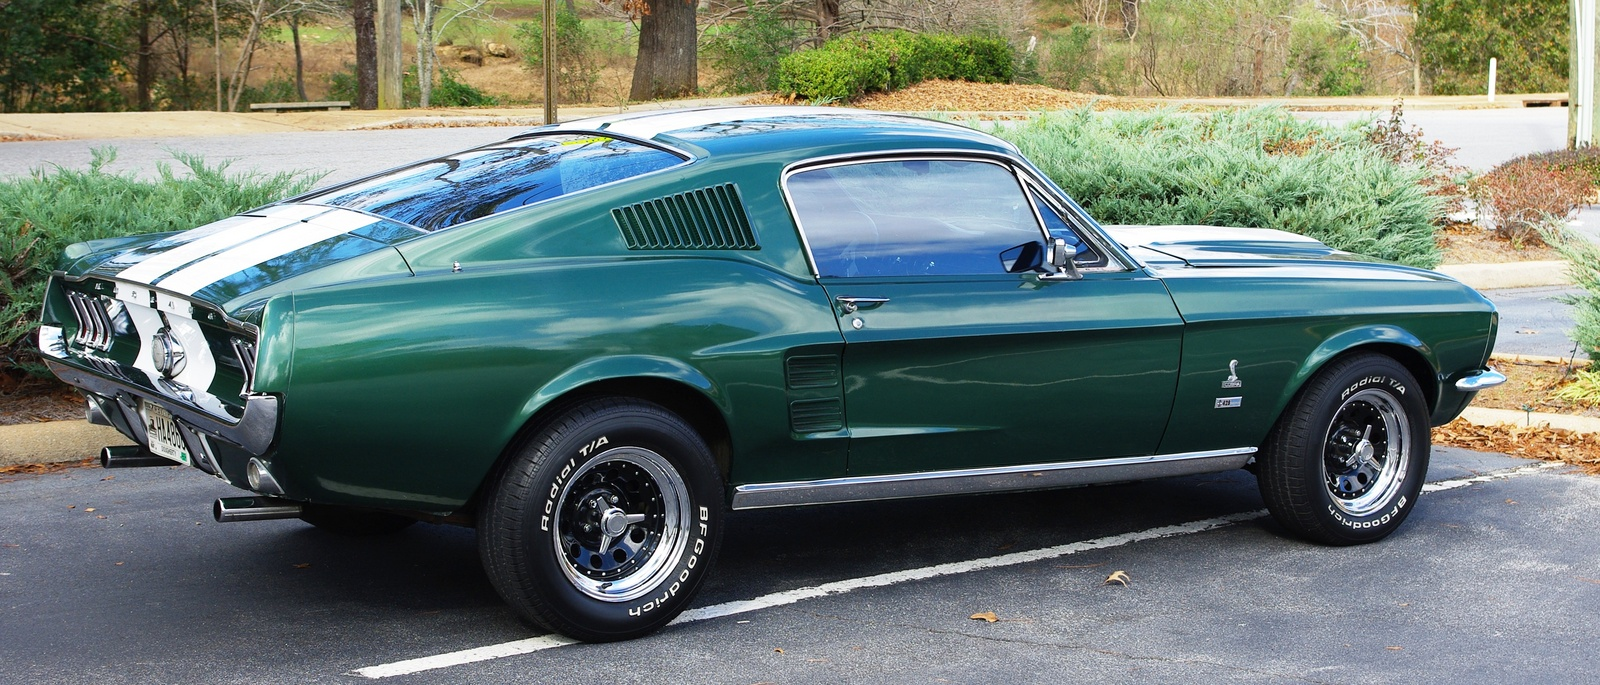 ford 1967 fastback mustang project cars for sale autos post. Black Bedroom Furniture Sets. Home Design Ideas